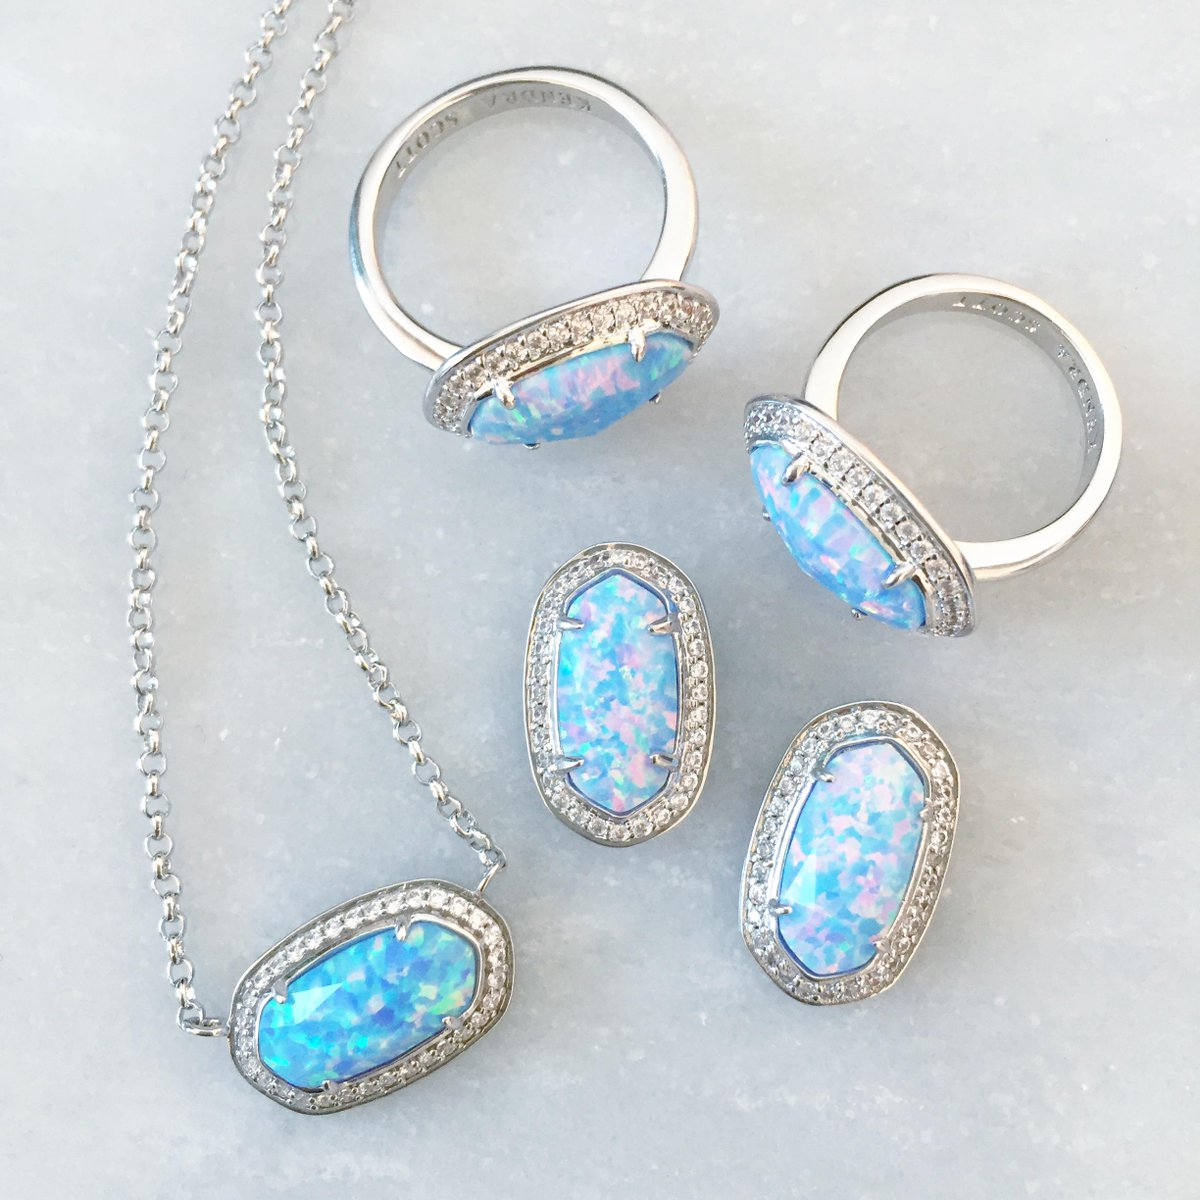 The accessory of the season? Frosted pastels. Introducing our new Ice Blue Kyocera Opal #comingsoon #KSMirrorMirror http://t.co/zqEJGtFGb6